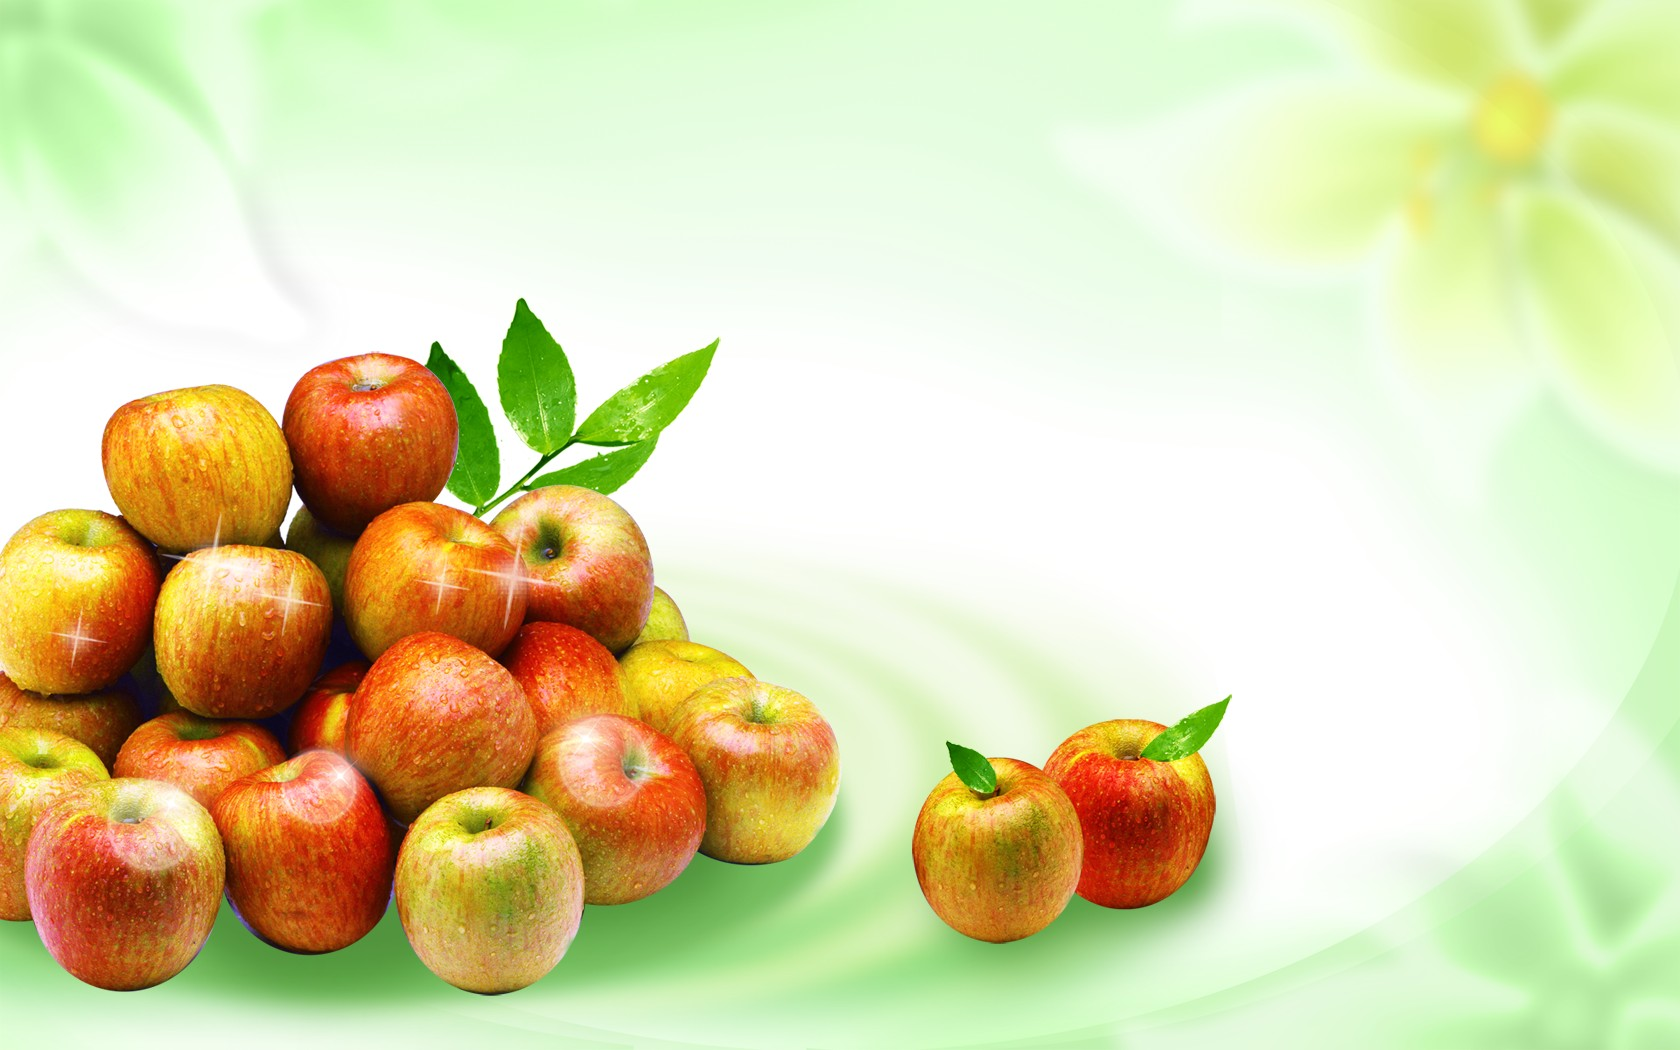 11 Fruit Psd Free Images